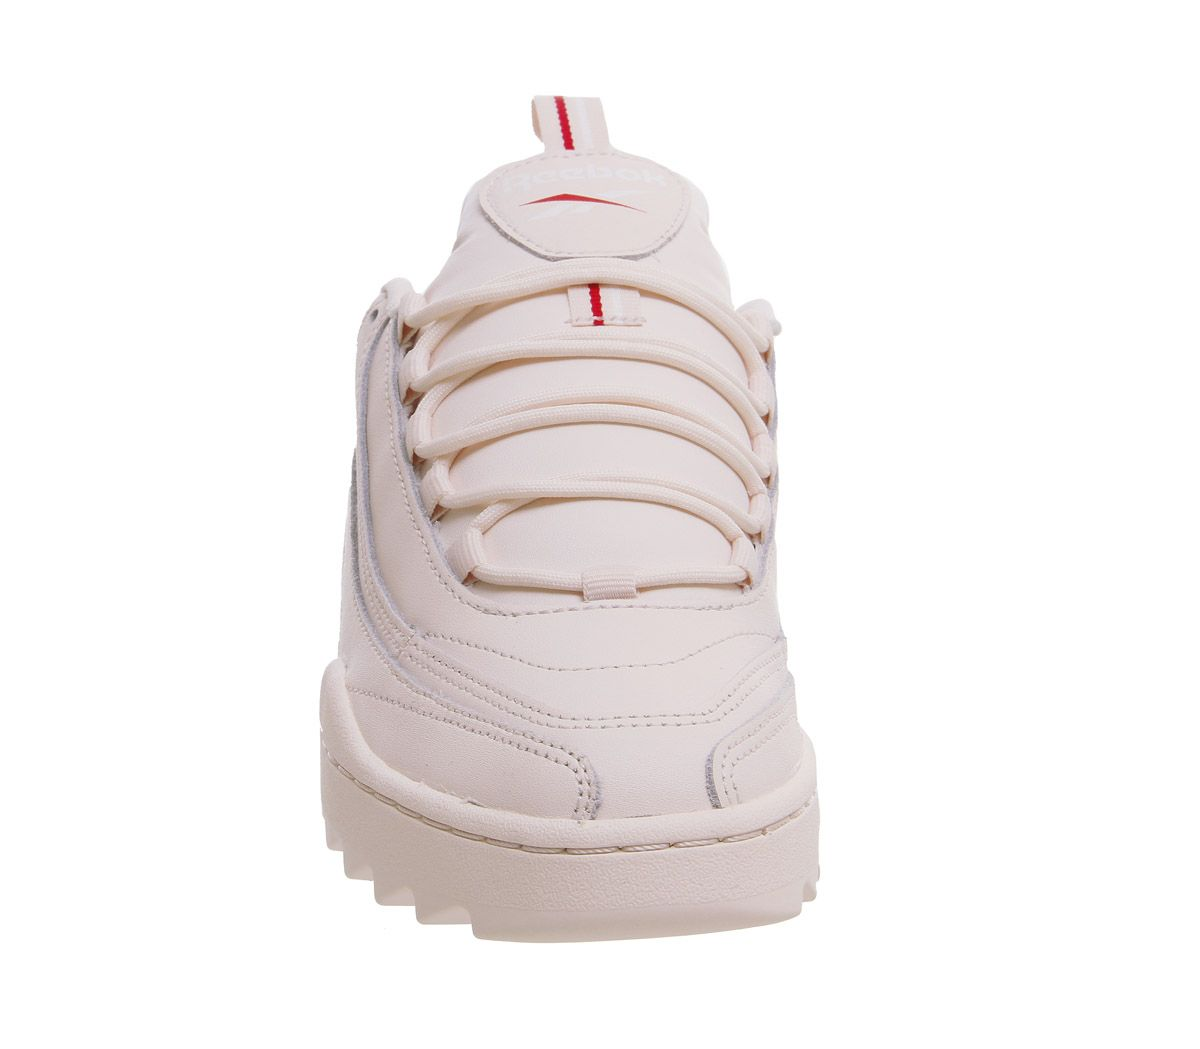 2c11368164e Womens Reebok Rivyx Ripple Trainers Pale Pink White Excellent Red ...